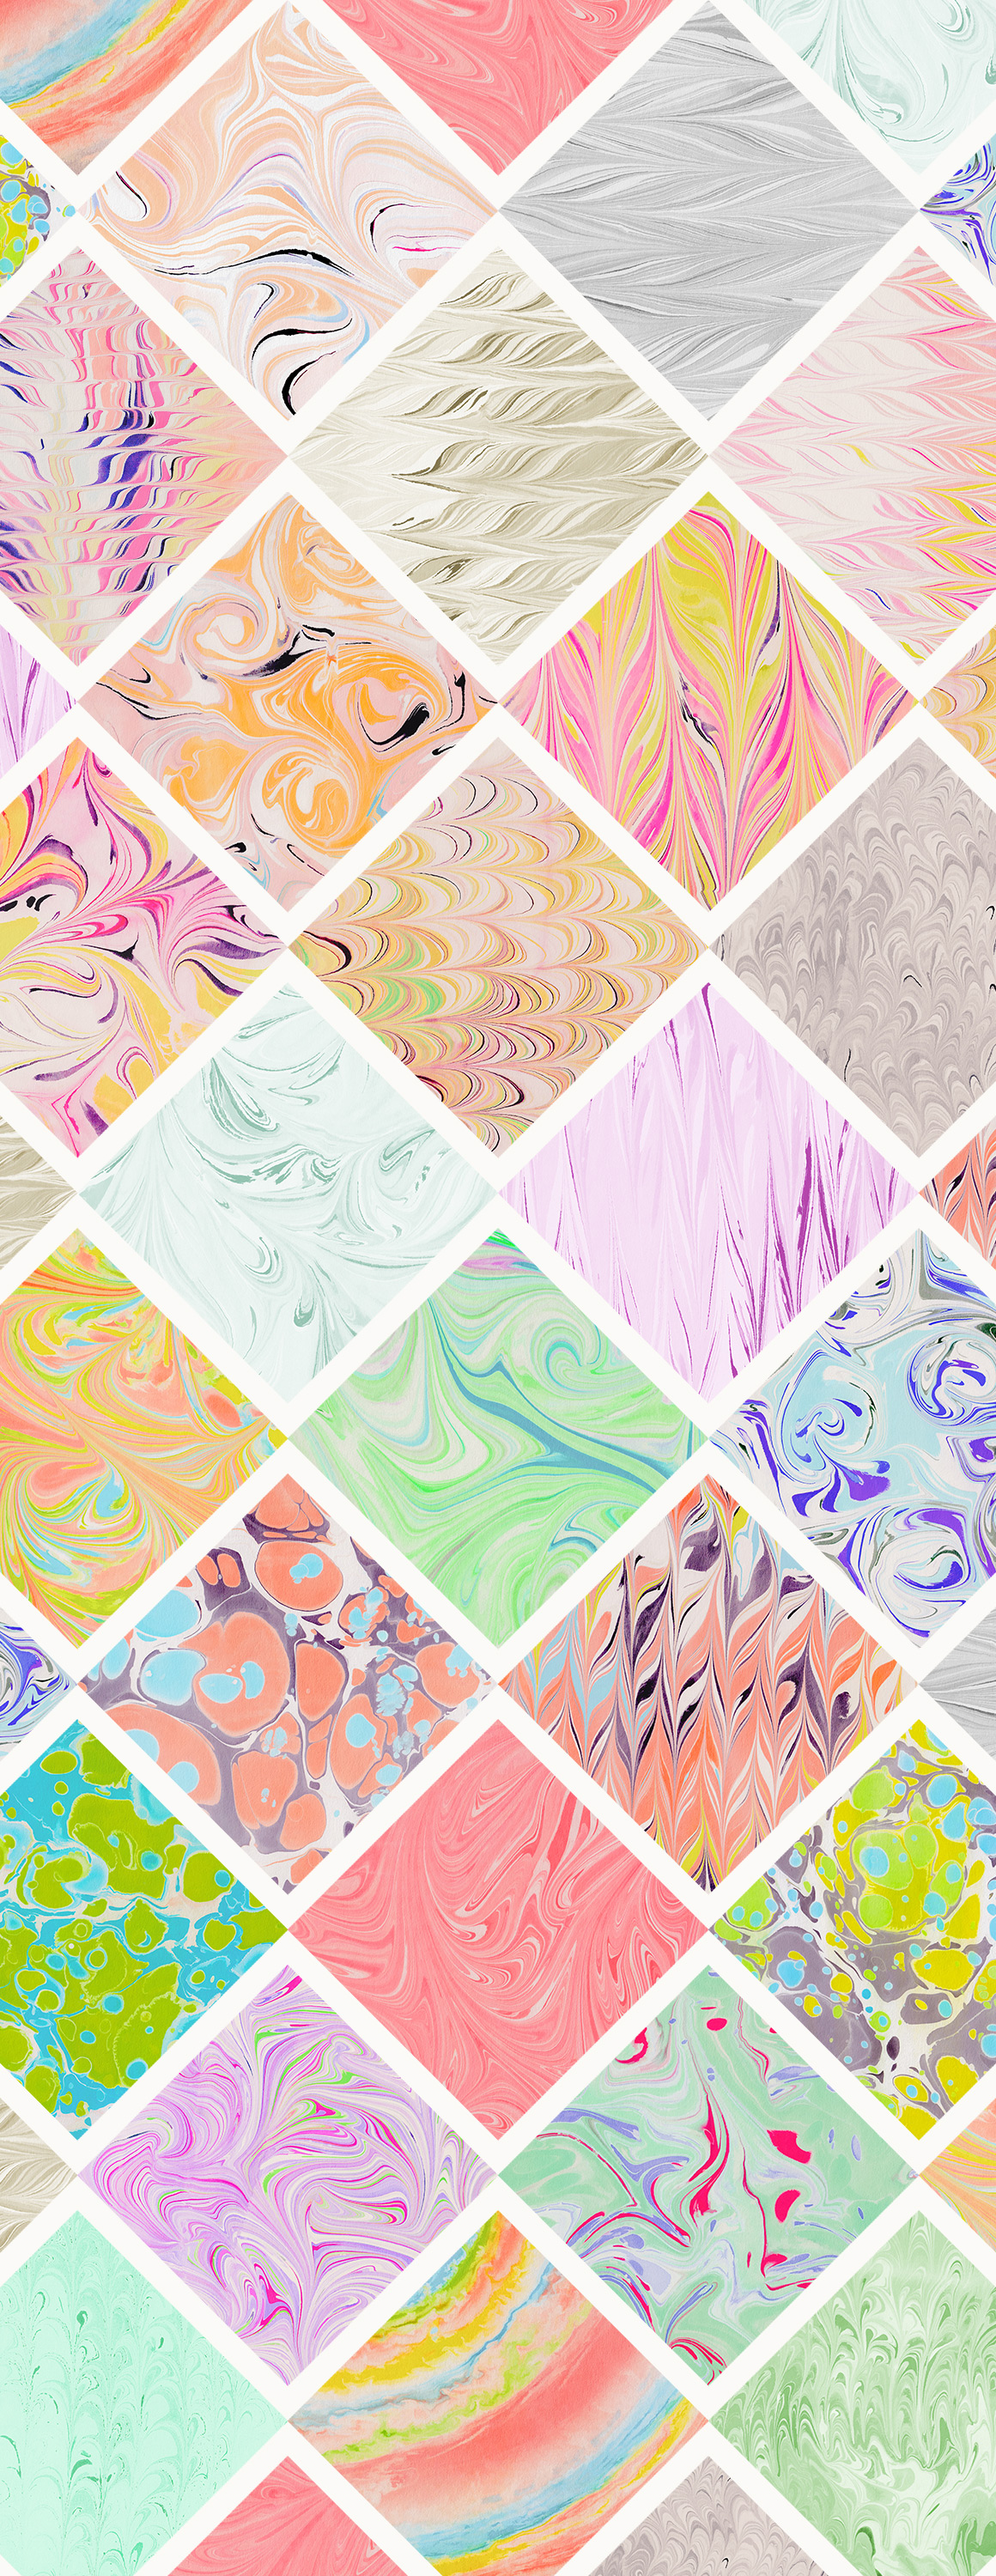 marbling-paper-textures-1-25